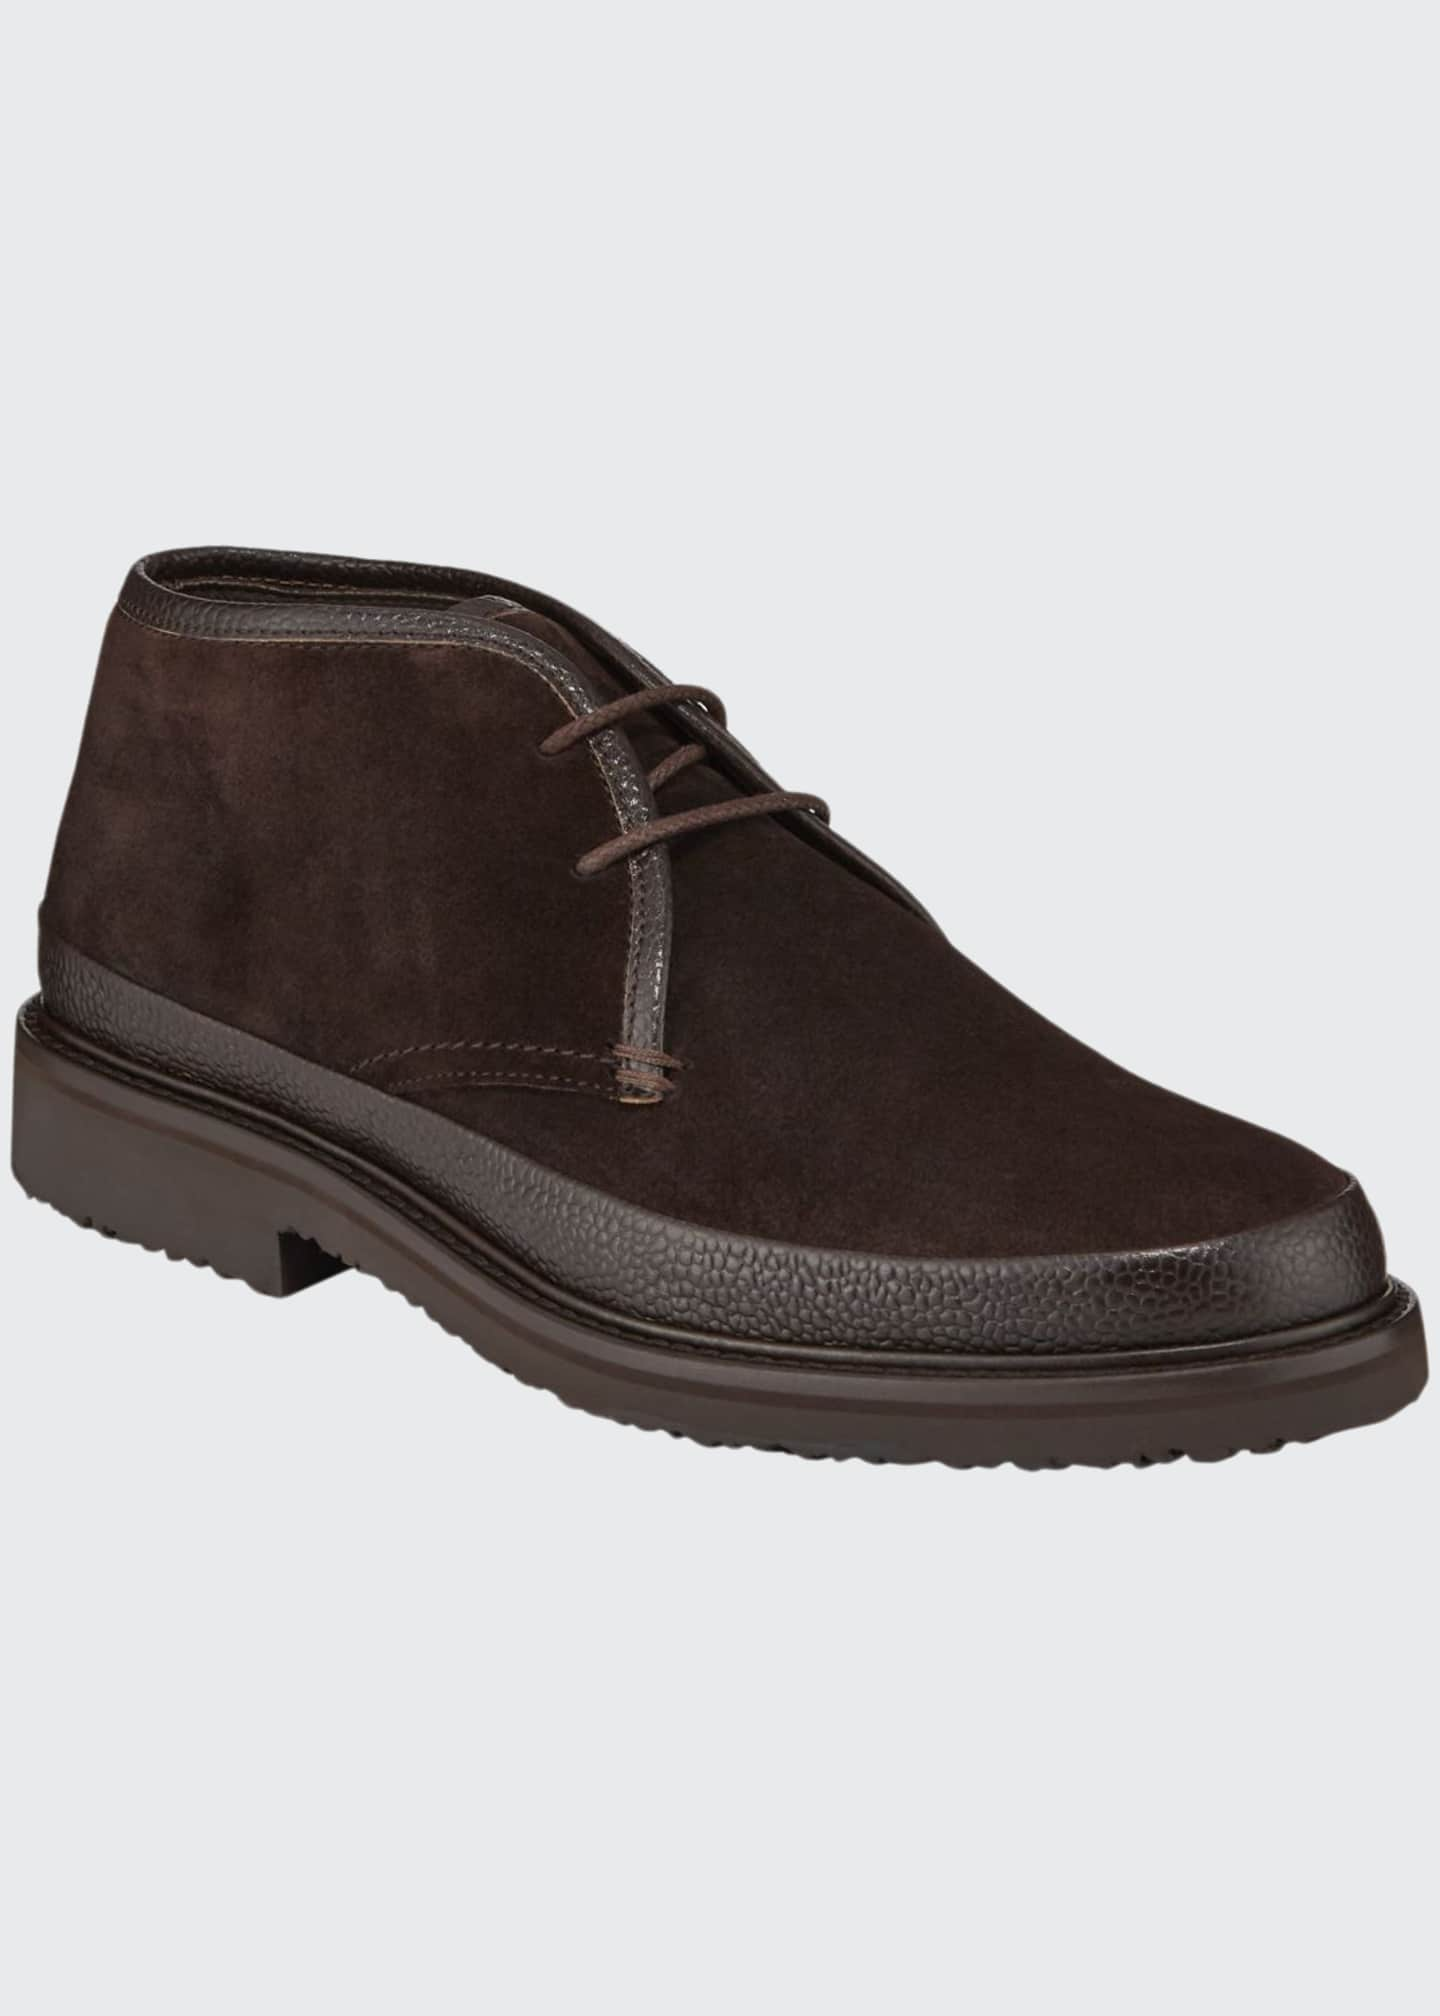 Image 1 of 3: Men's Trivero Suede Chukka Boots with Mud Guard